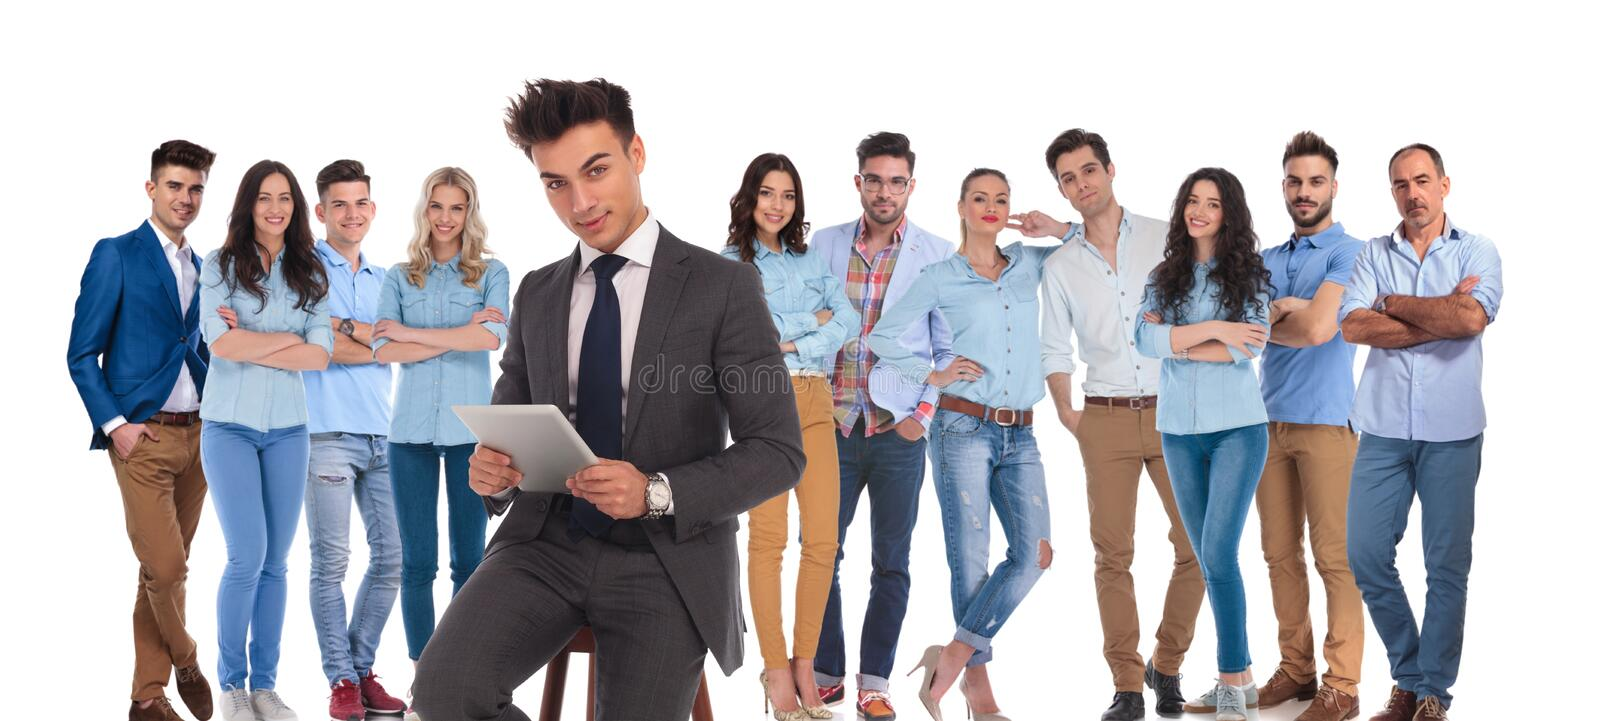 Seated businessman holding tablet in front of team royalty free stock photo